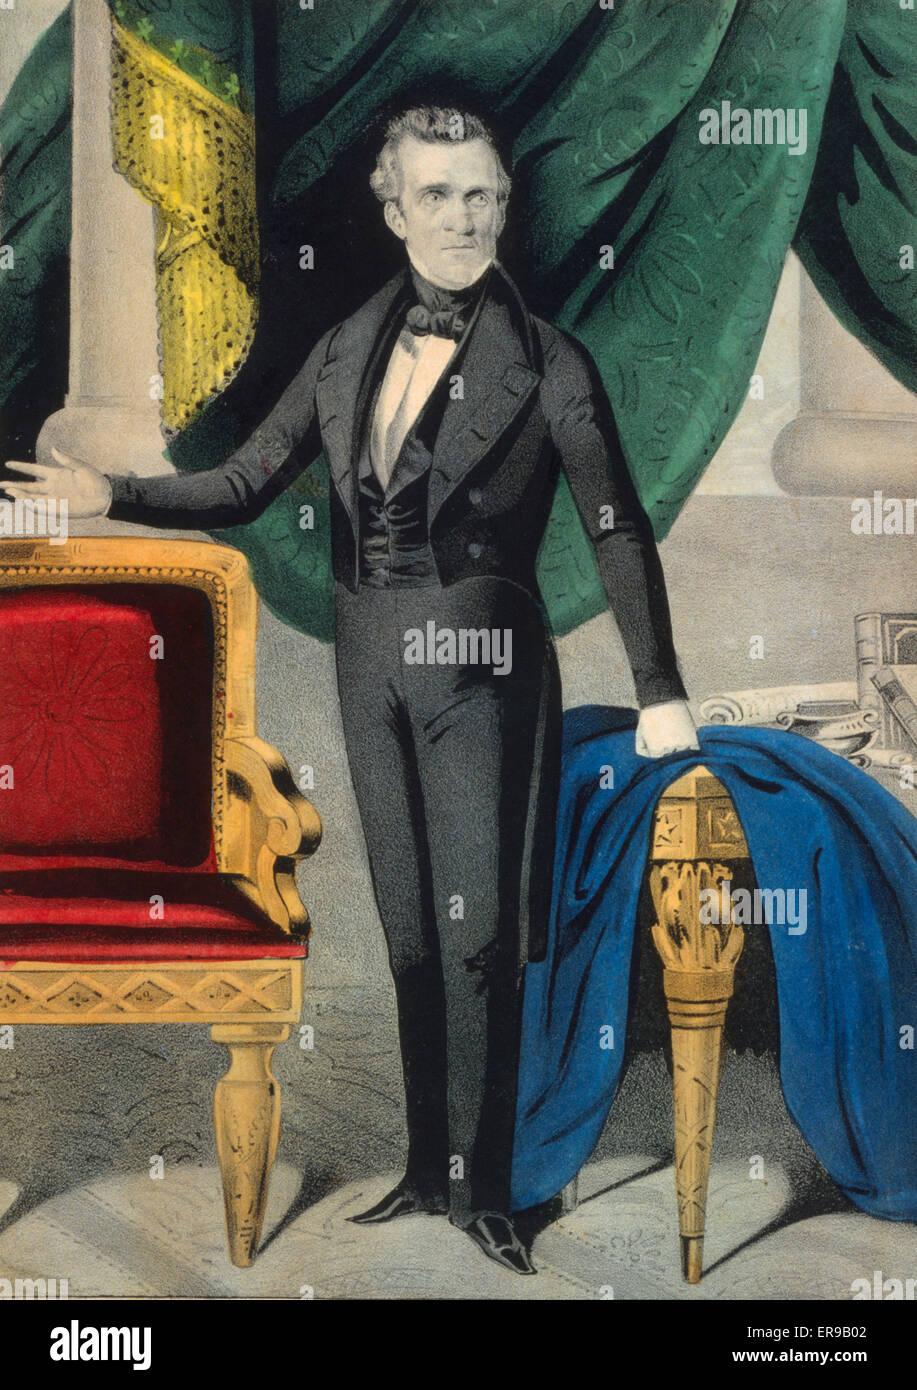 James K. Polk--President elect of the United States. James K. Polk, full-length portrait, standing, facing slightly - Stock Image